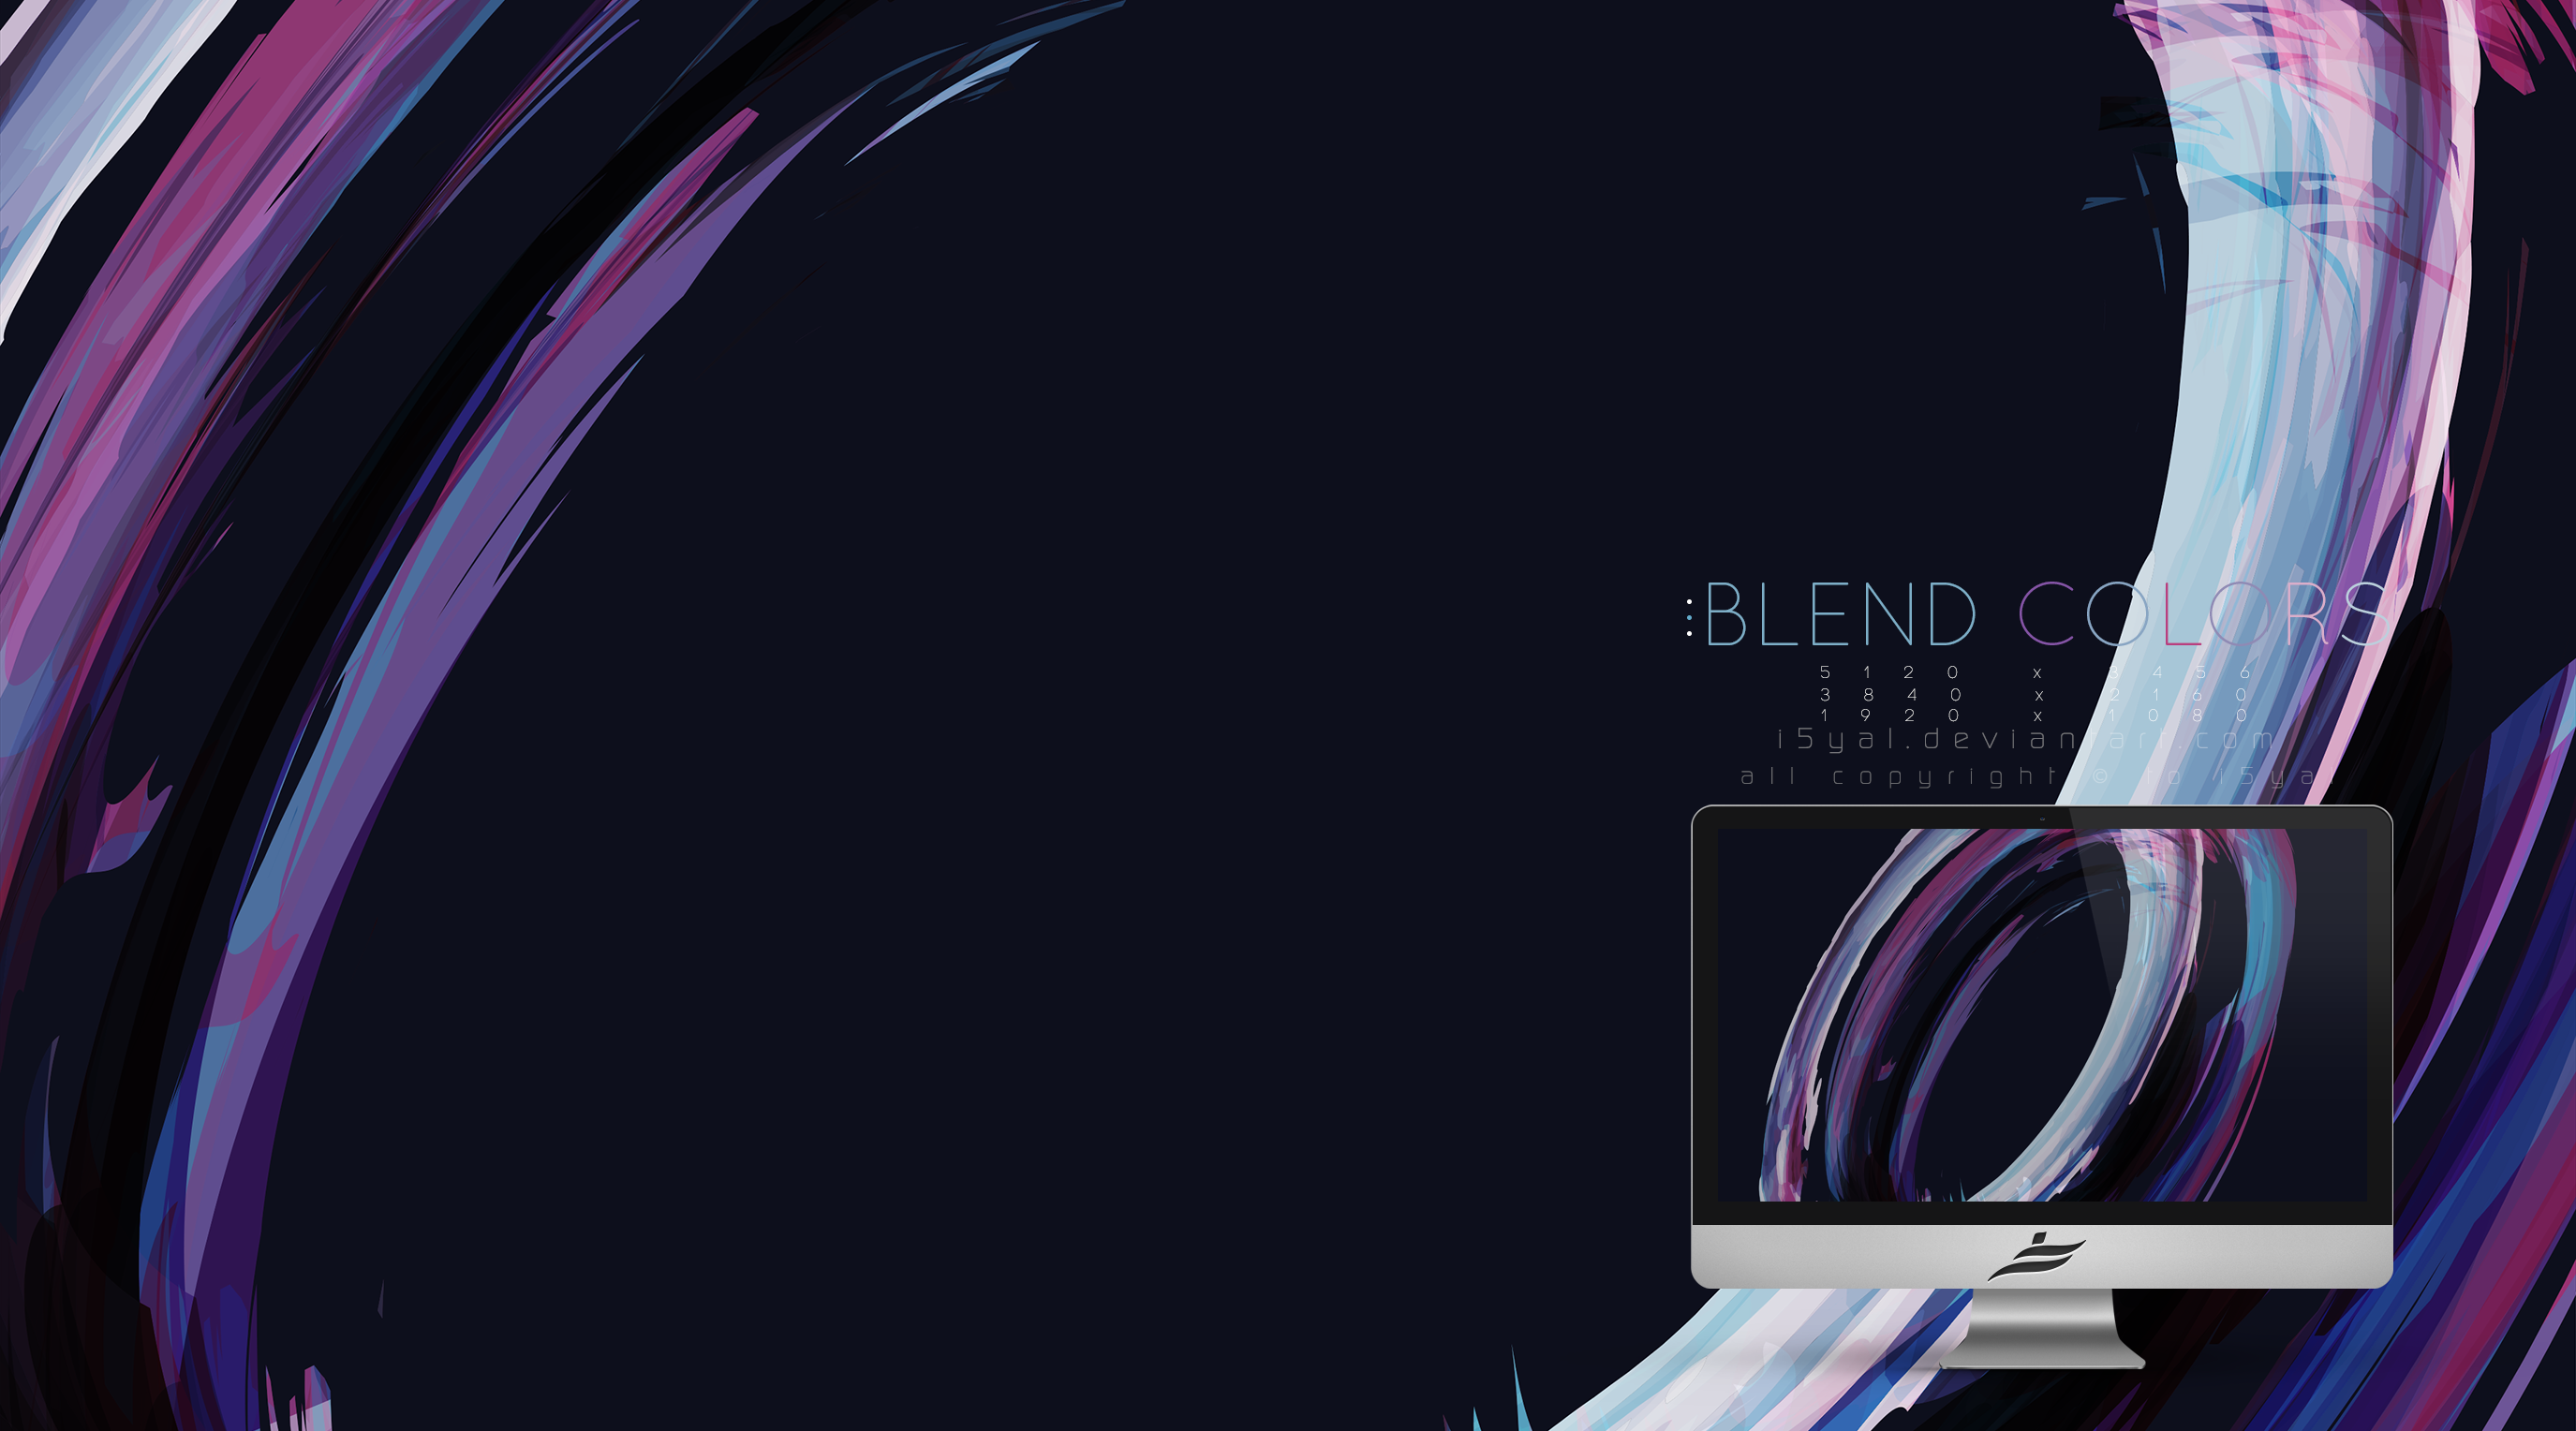 Blend Colors wallpaper by i5yal